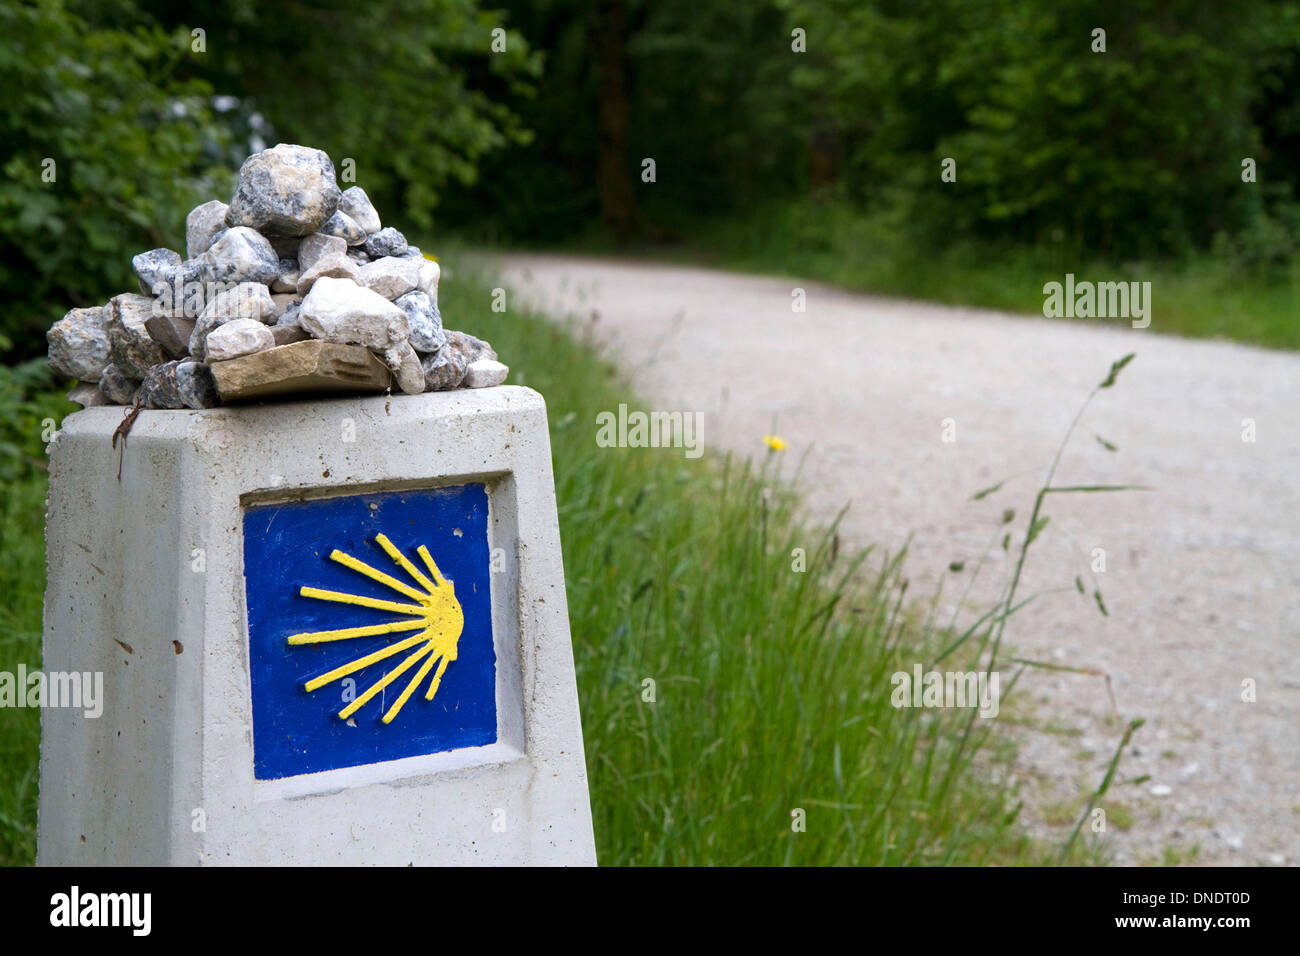 Marker along the Camino De Santiago, the Way of St. James pilgrimage route, Navarra, Spain. - Stock Image